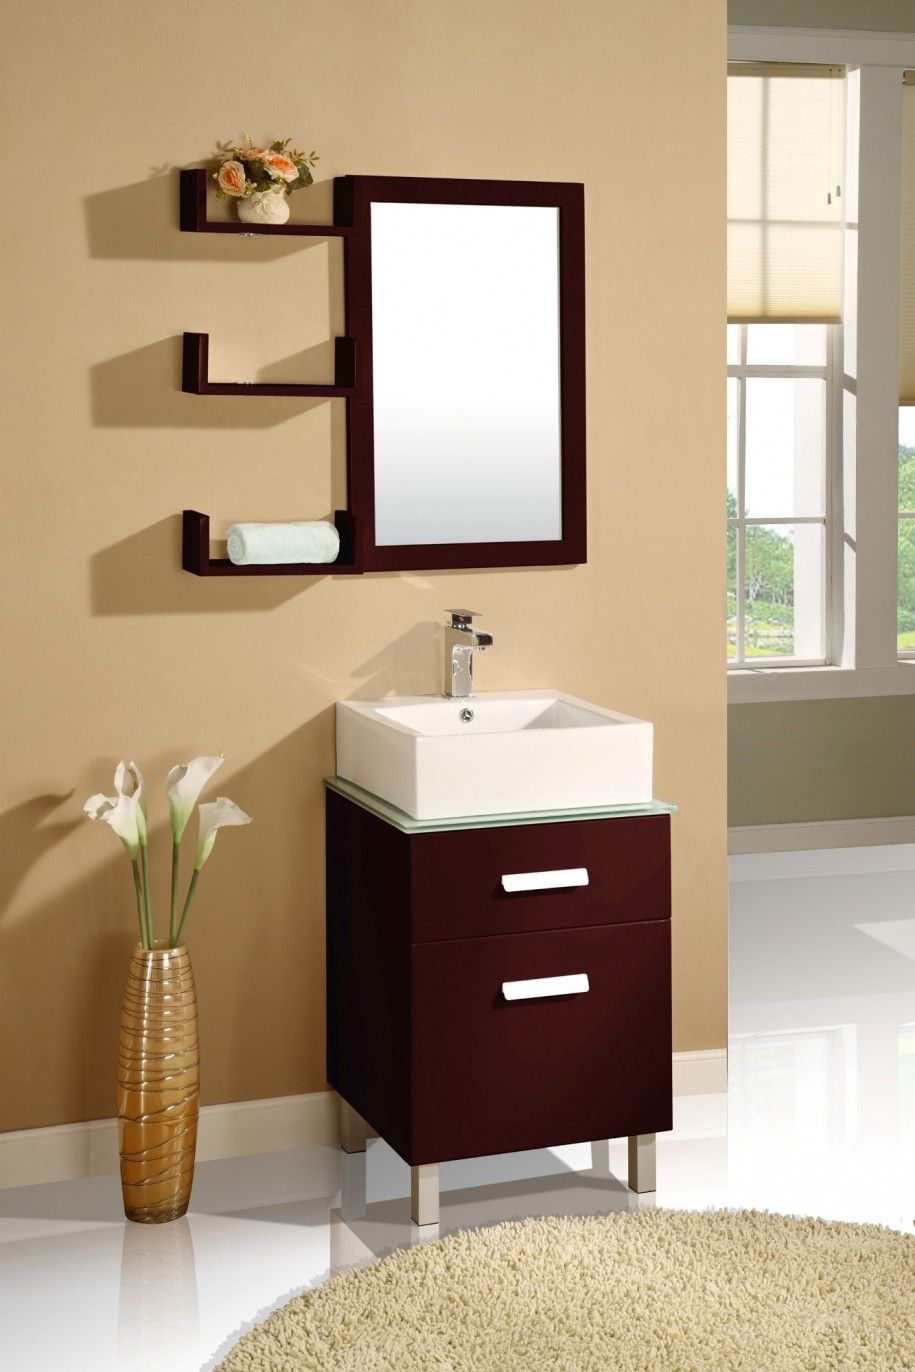 Simple dark wood bathroom mirrors with shelves and small dark wood vanity cabinet and white wash Small bathroom mirror design